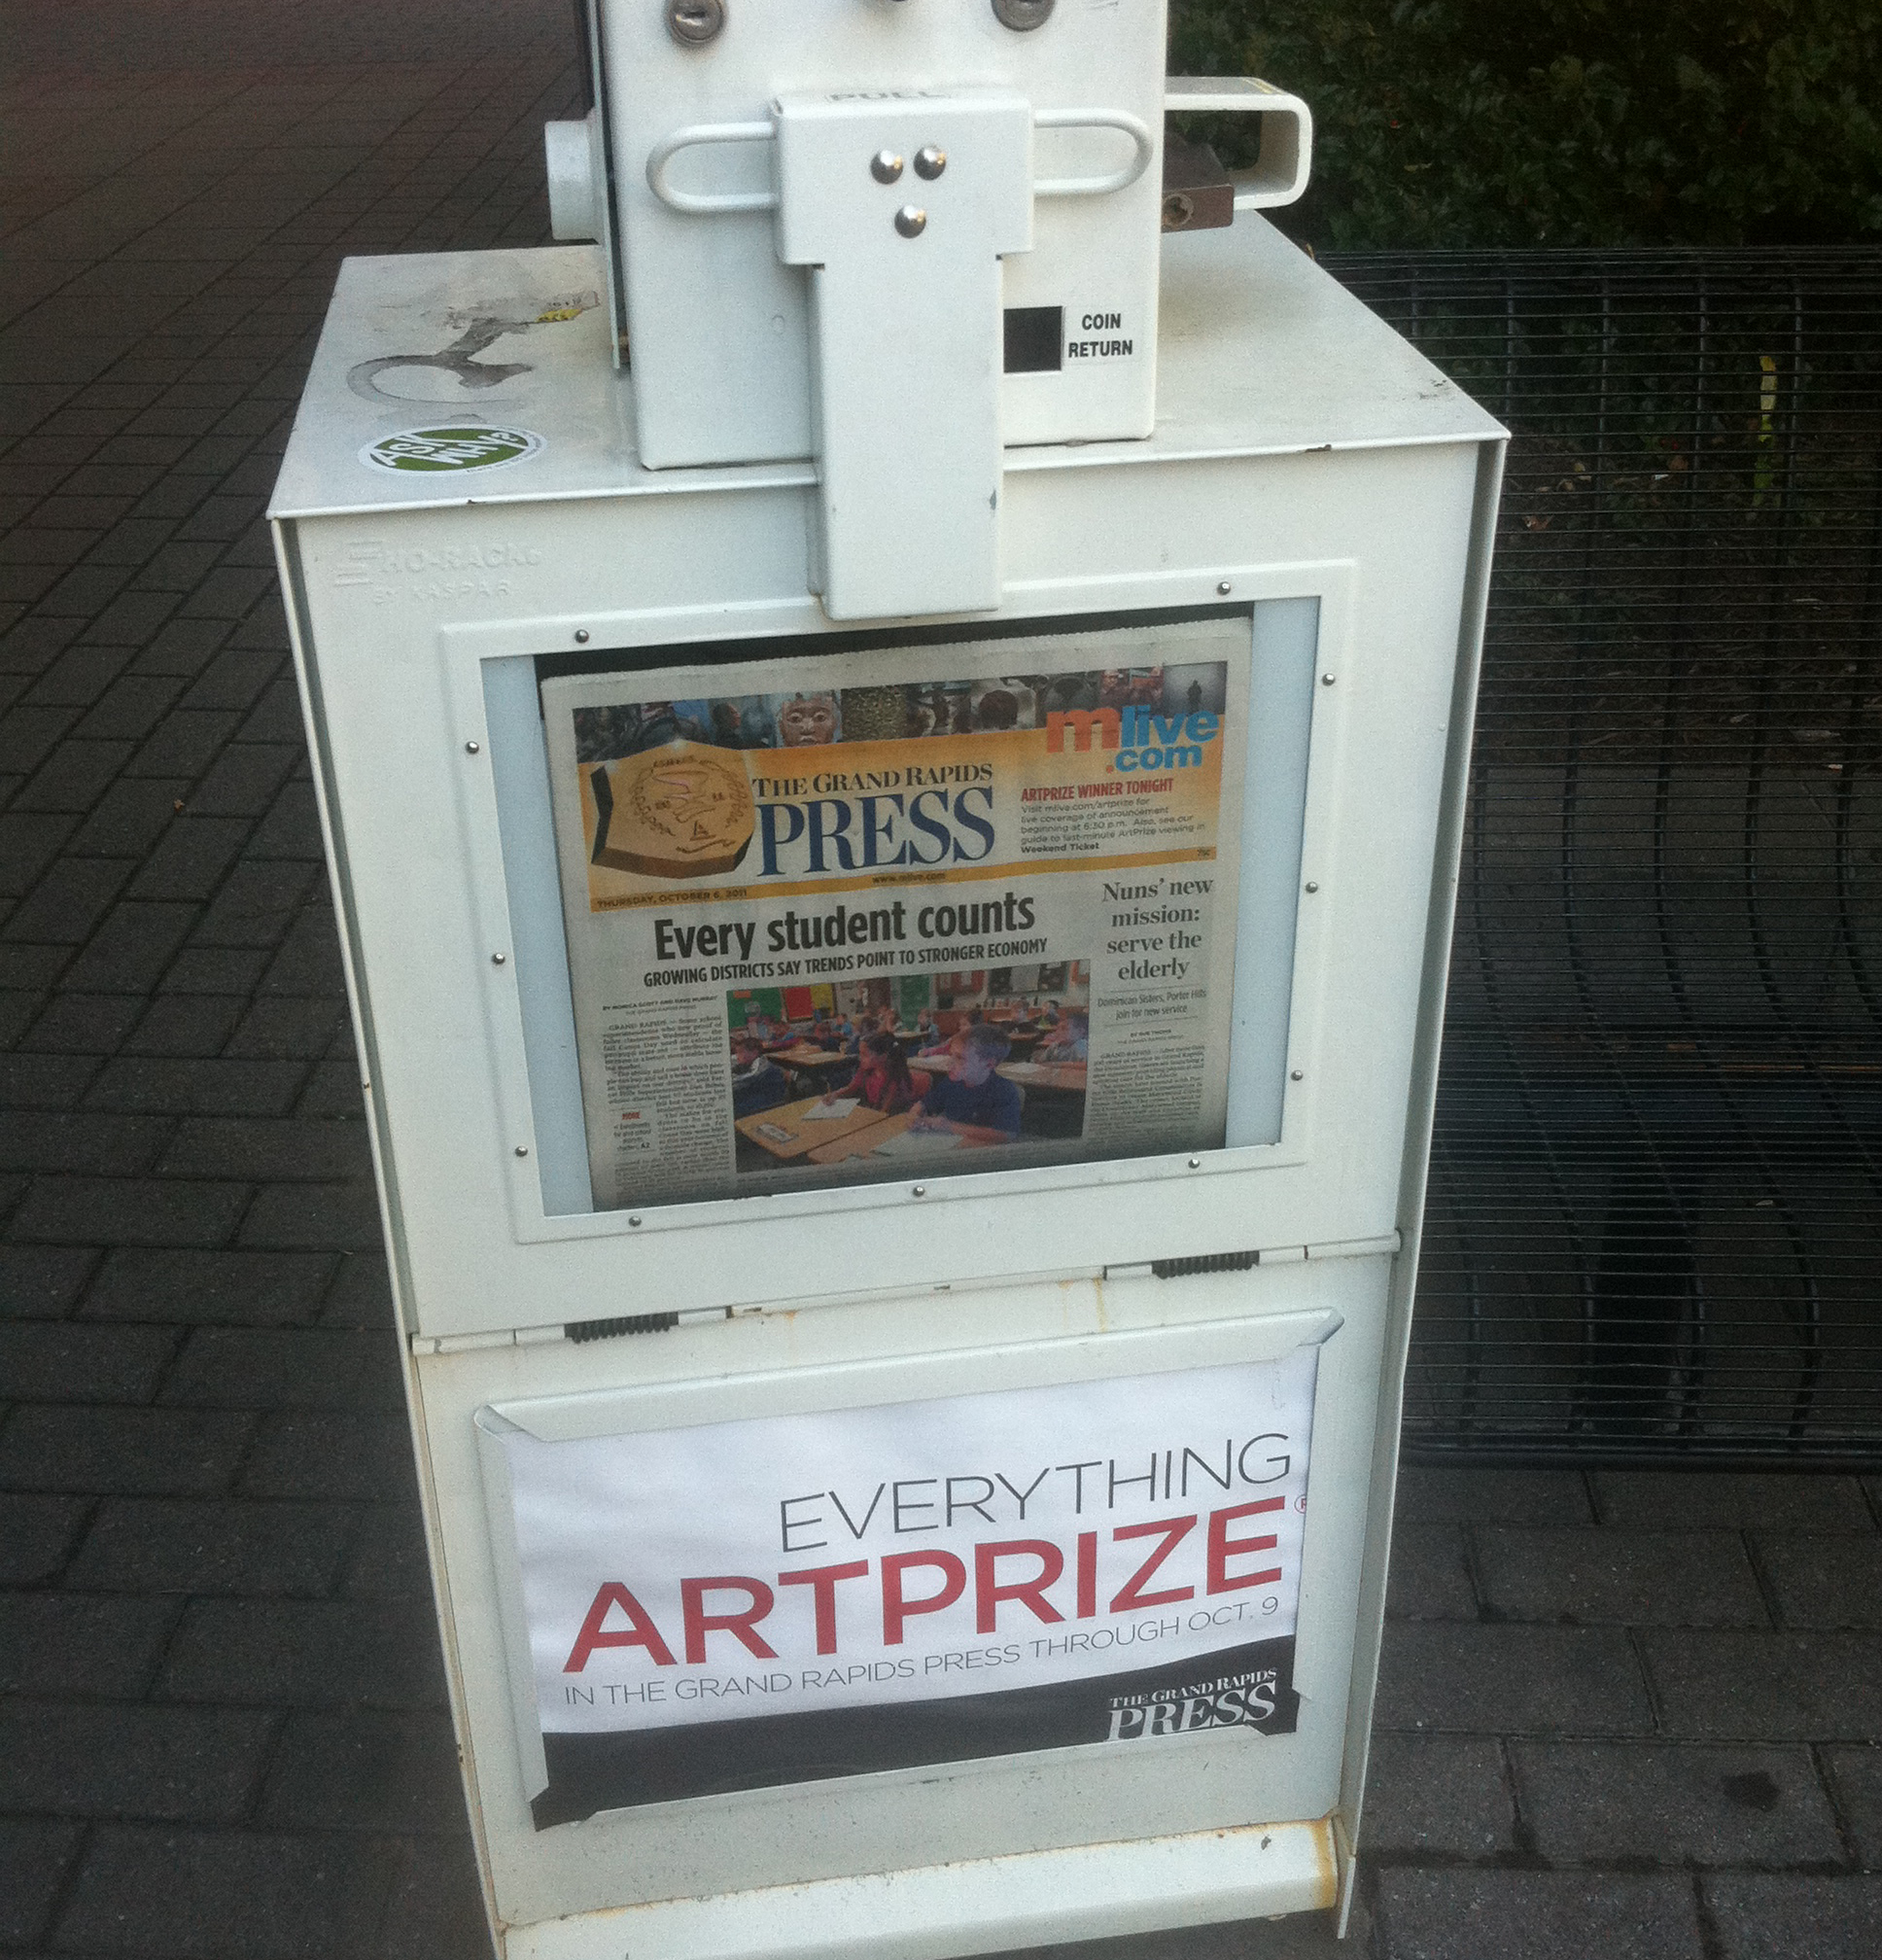 artprize news box